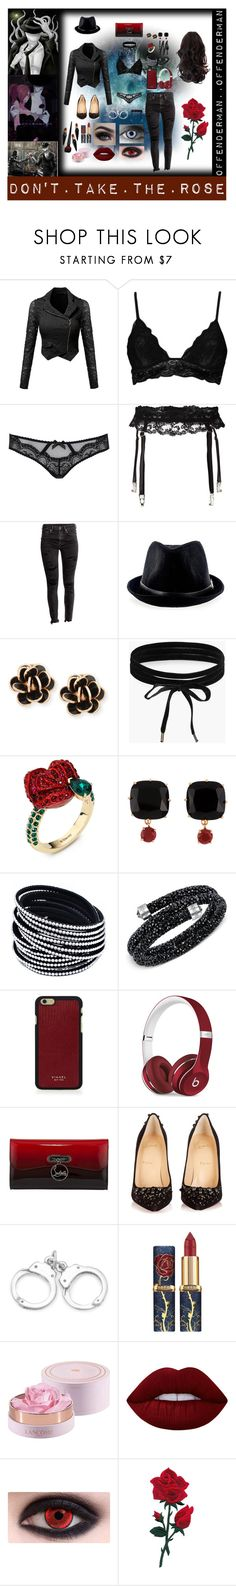 """""""Offenderman"""" by laughingjacksdaughter ❤ liked on Polyvore featuring Boohoo, L'Agent By Agent Provocateur, La Perla, Chantecler, Atelier Swarovski, Les Néréides, Swarovski, Vianel, Beats by Dr. Dre and Christian Louboutin"""